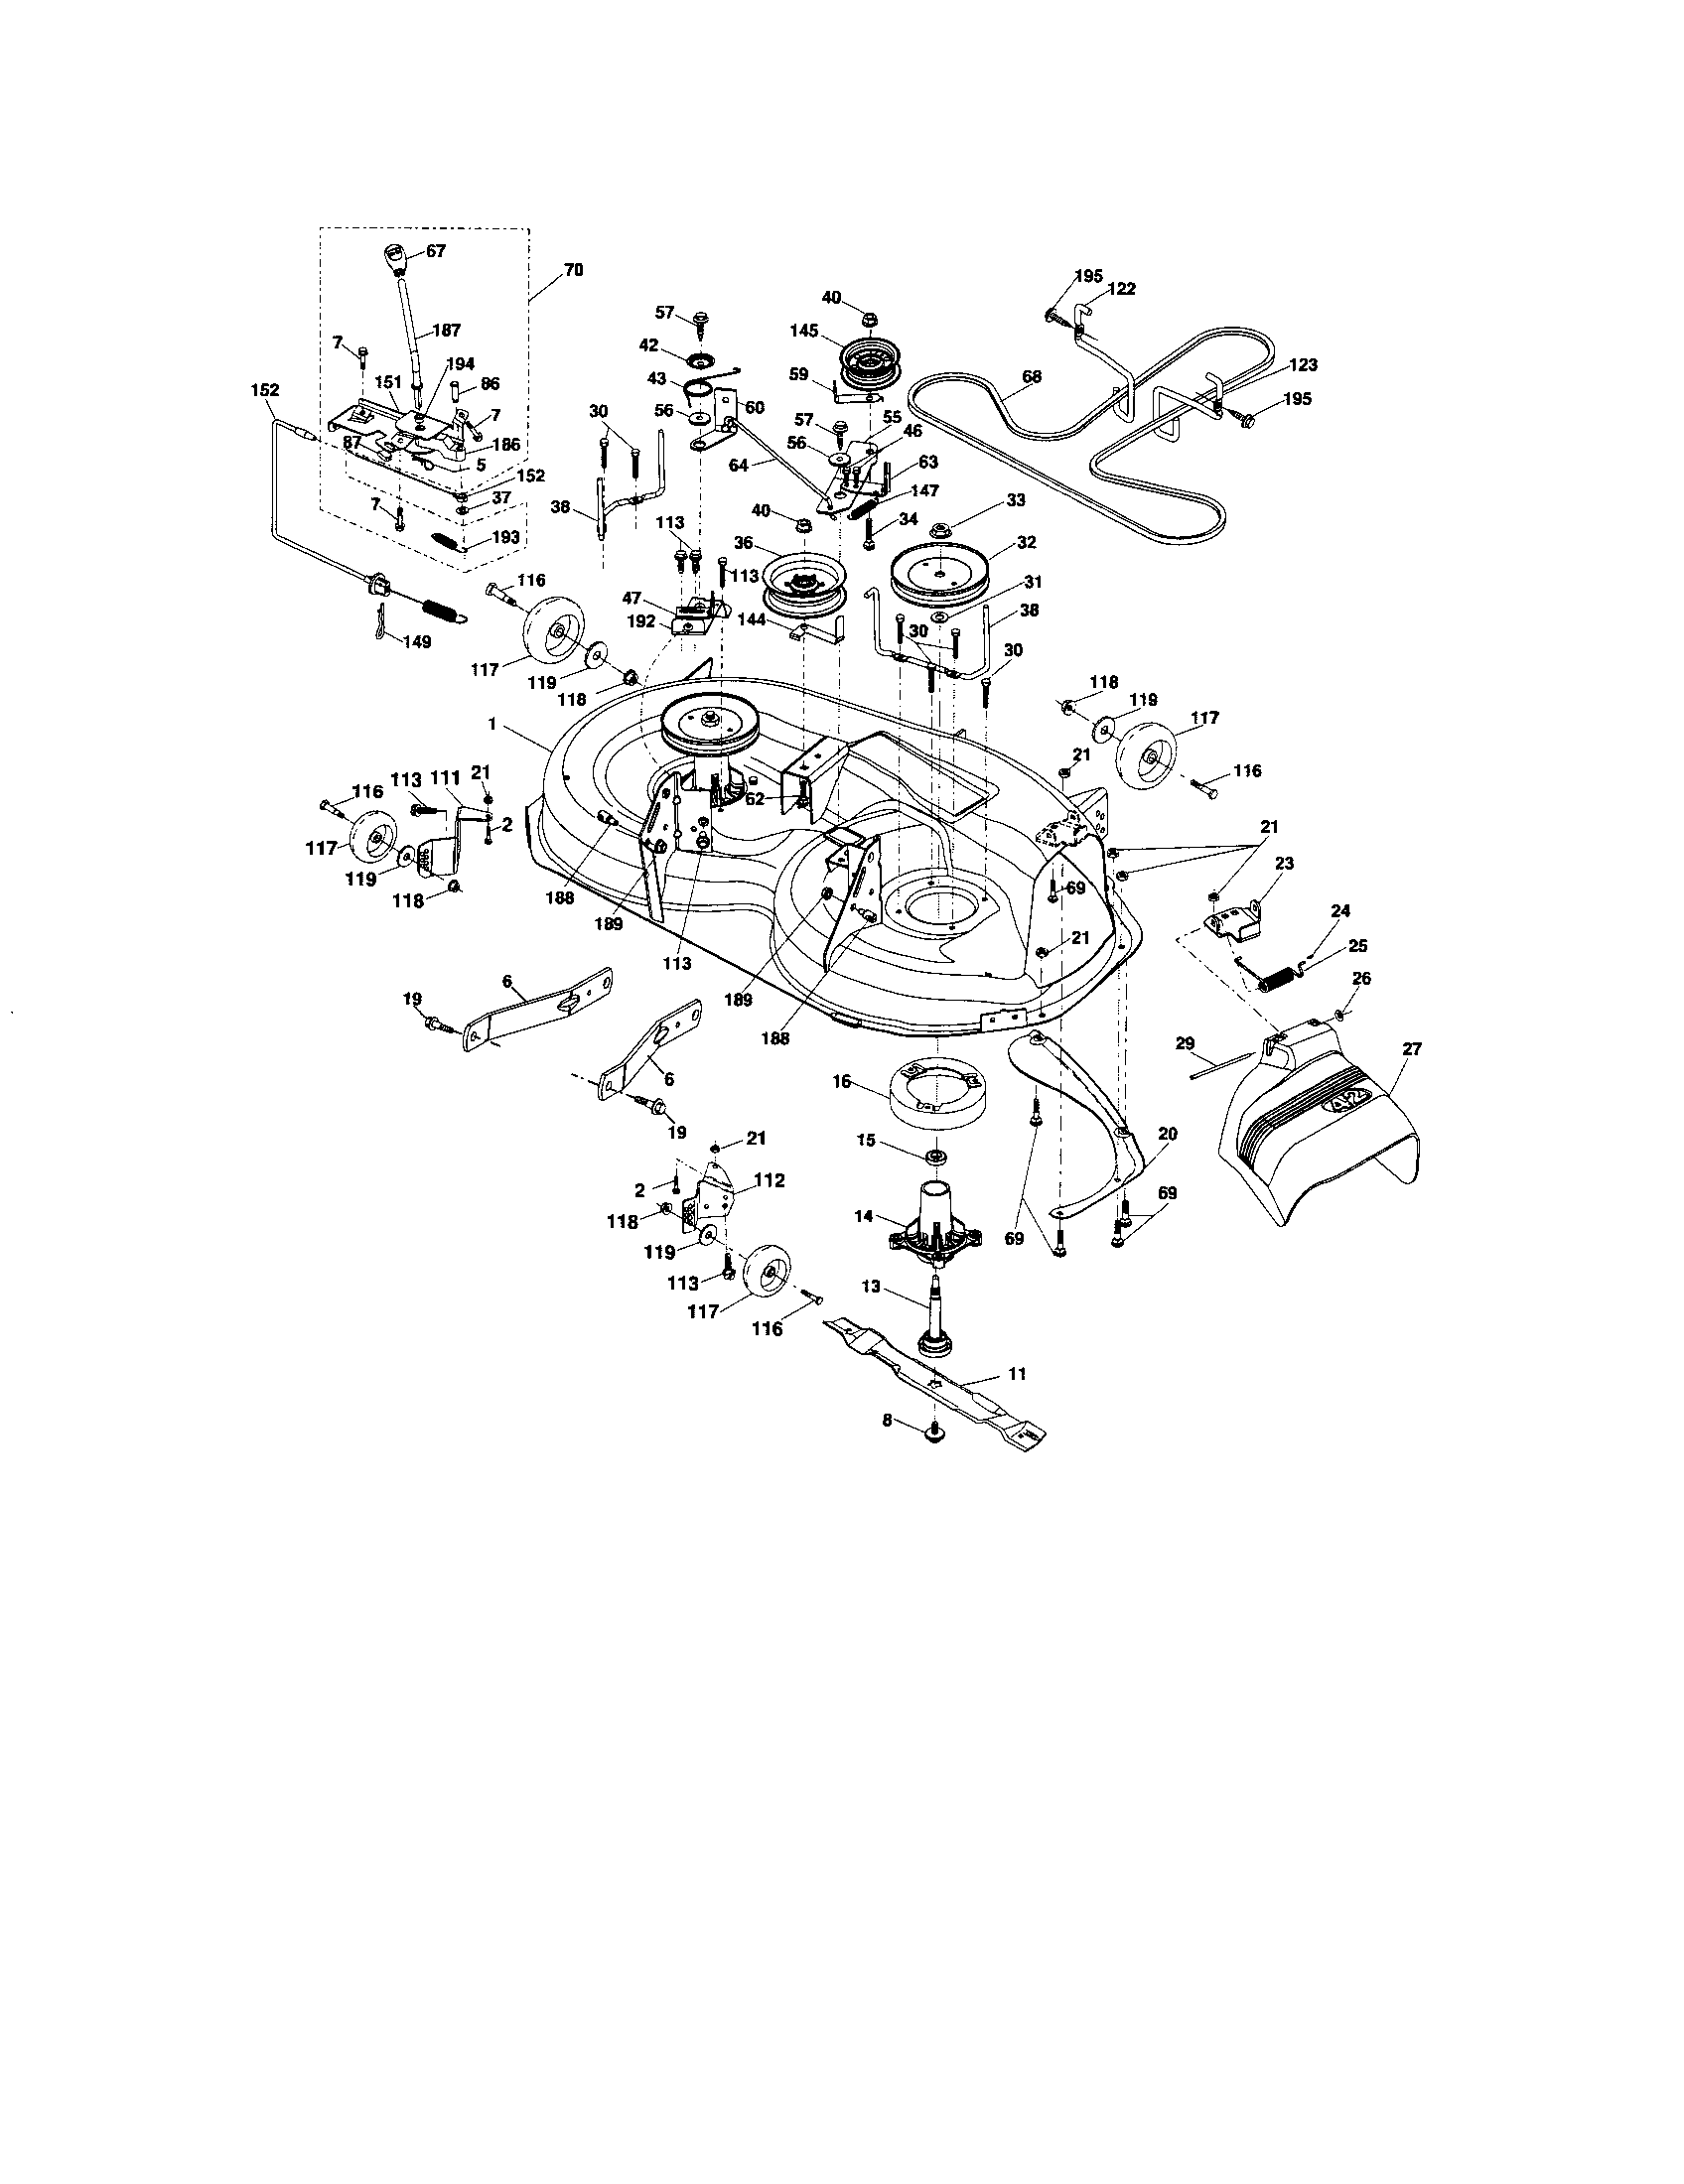 MOWER DECK Diagram & Parts List for Model 917287261